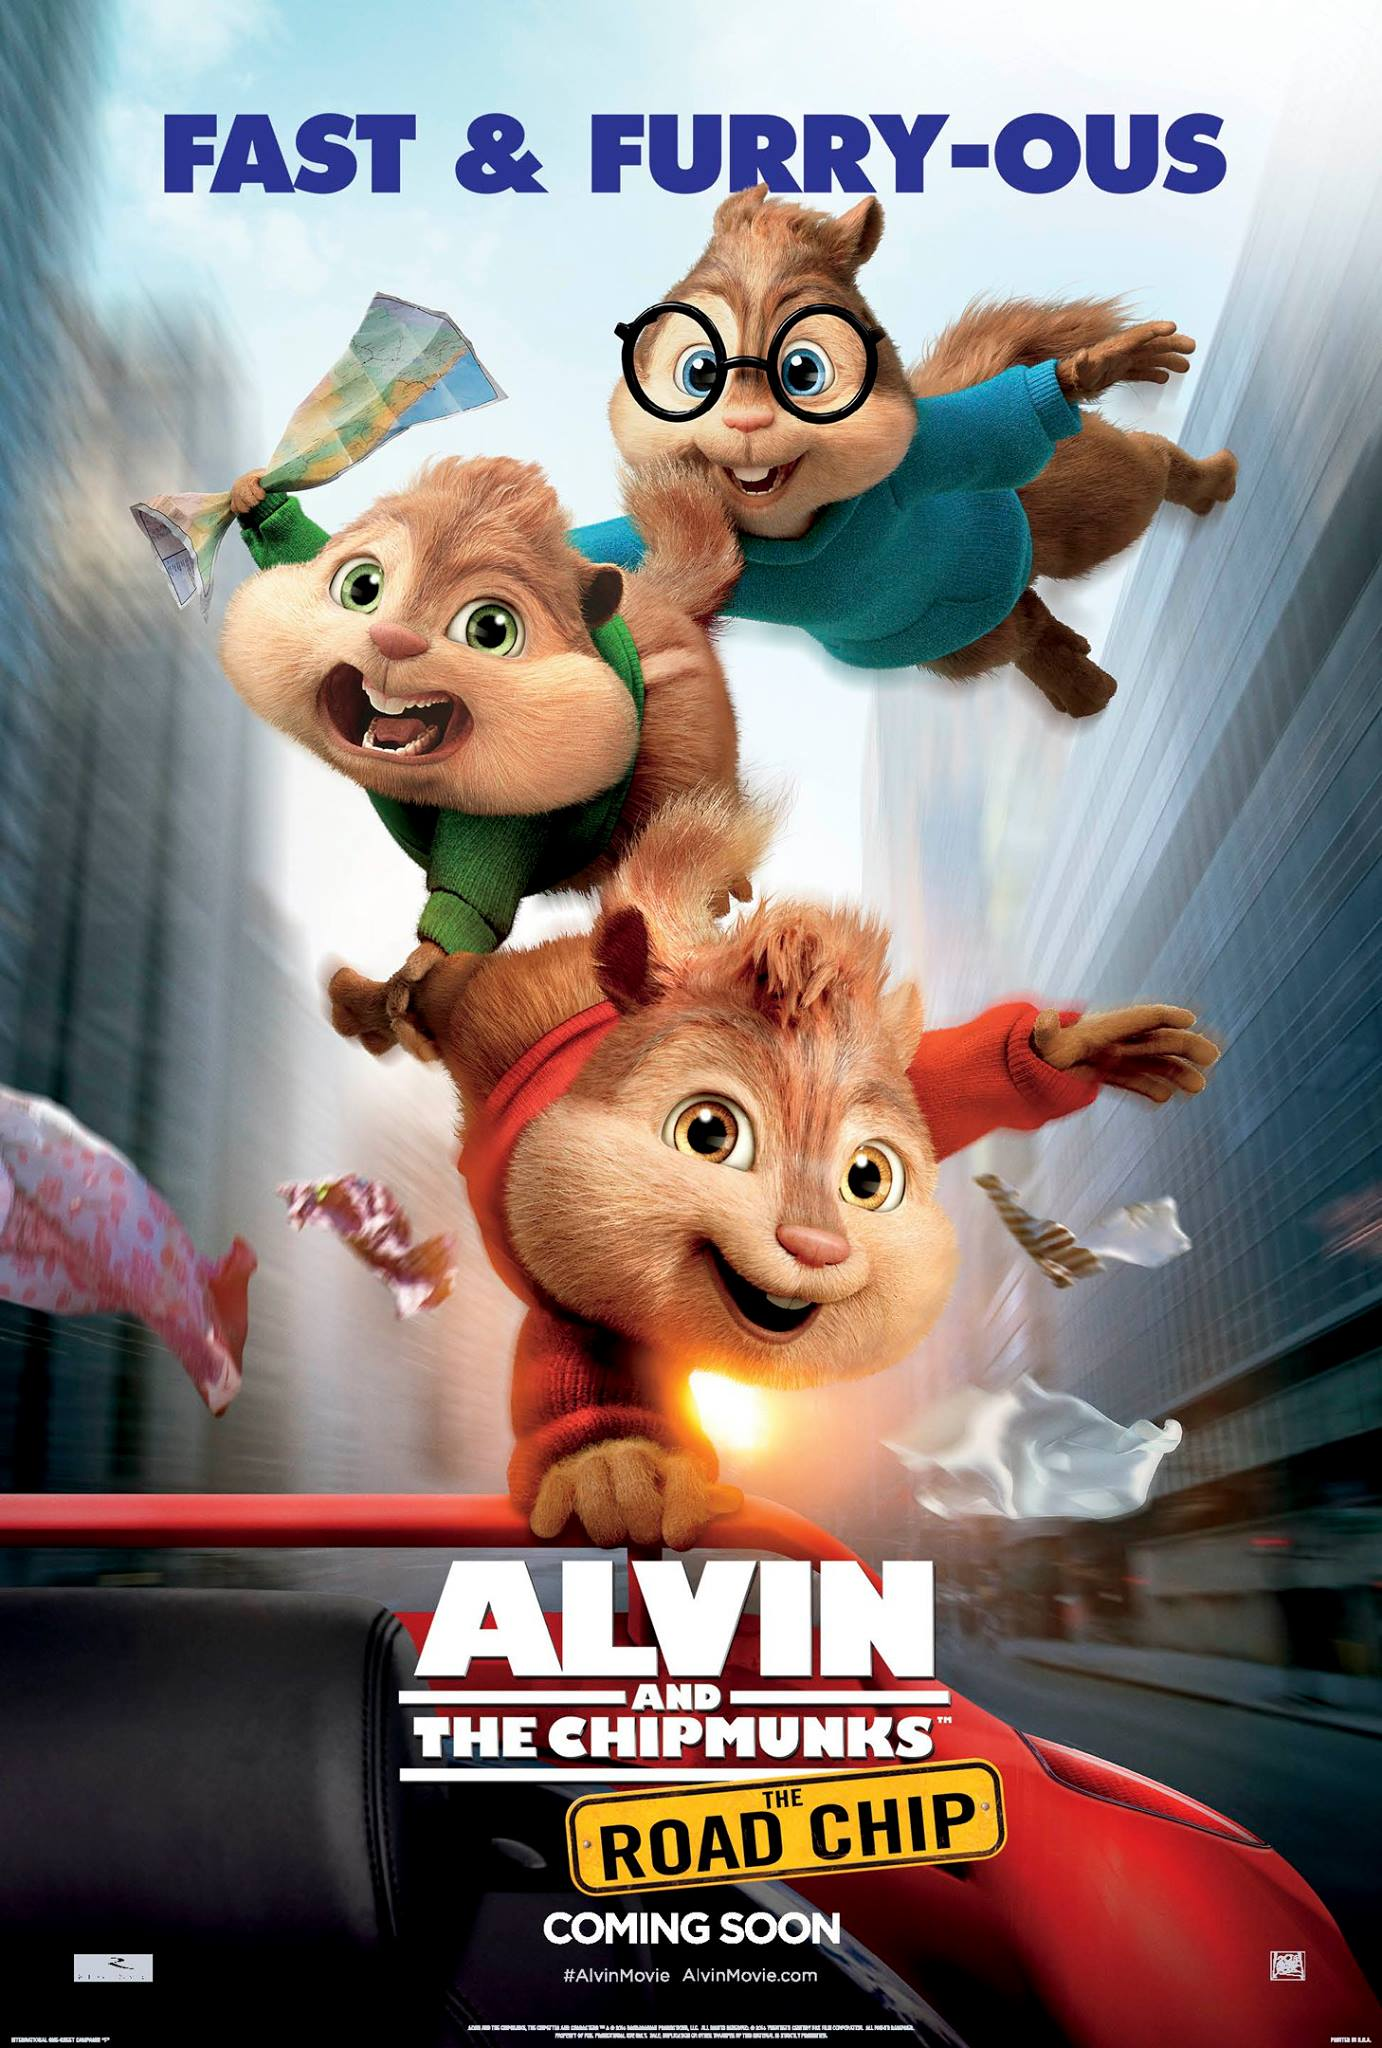 Alvin and the Chipmunks The Road Chip-12Novembro2015 (1)